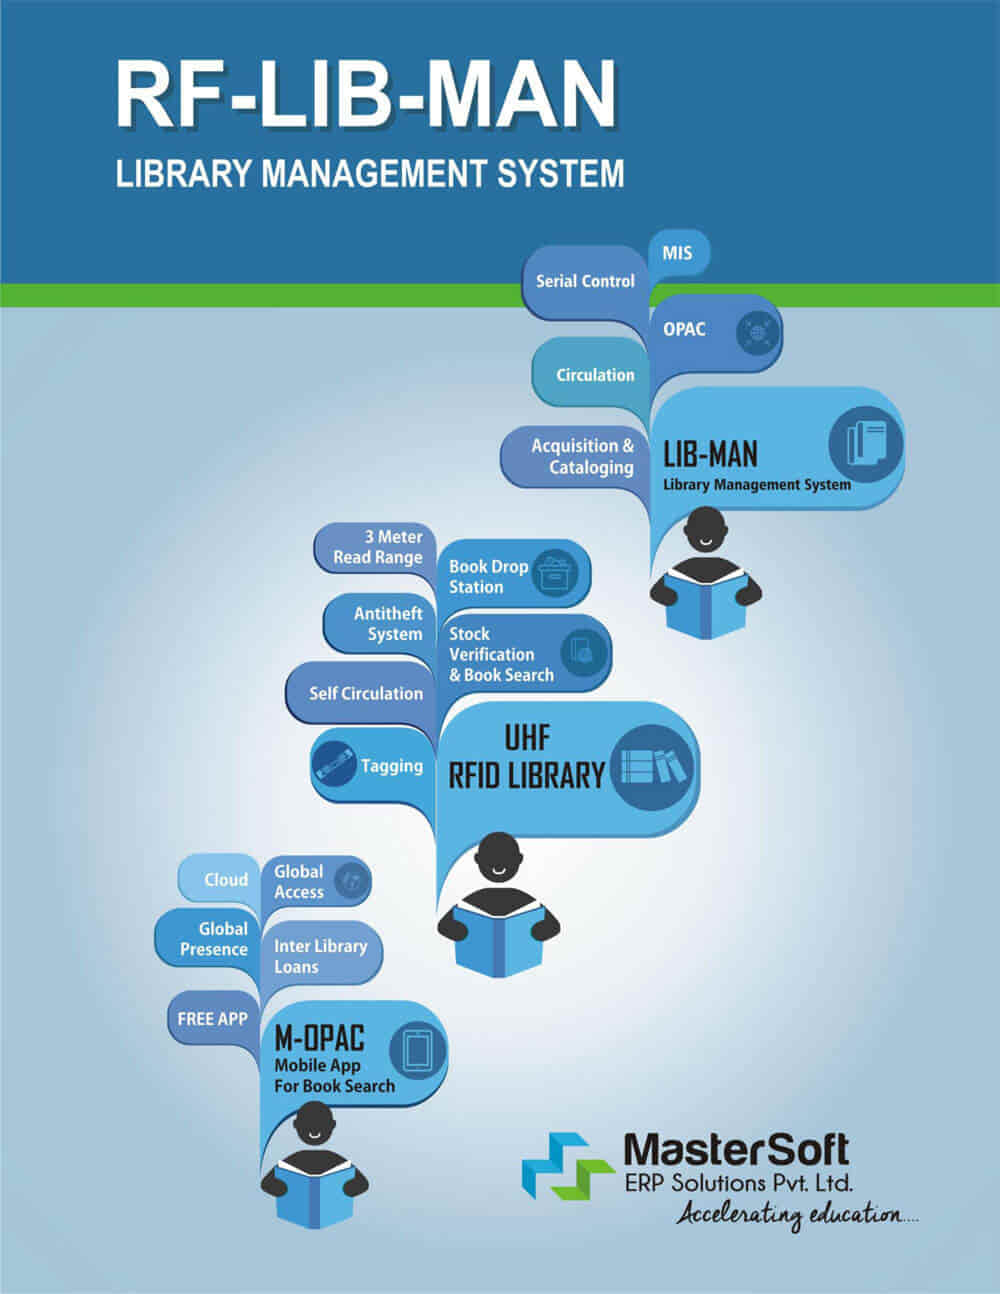 rfid based library management system thesis Powerpoint slideshow about 'rfid based library management system' - khanh rfid based system reduces repetitive scanning of individual items at the circulation desk during check in, check out and hence avoids rsi such as carpal tunnel syndrome.